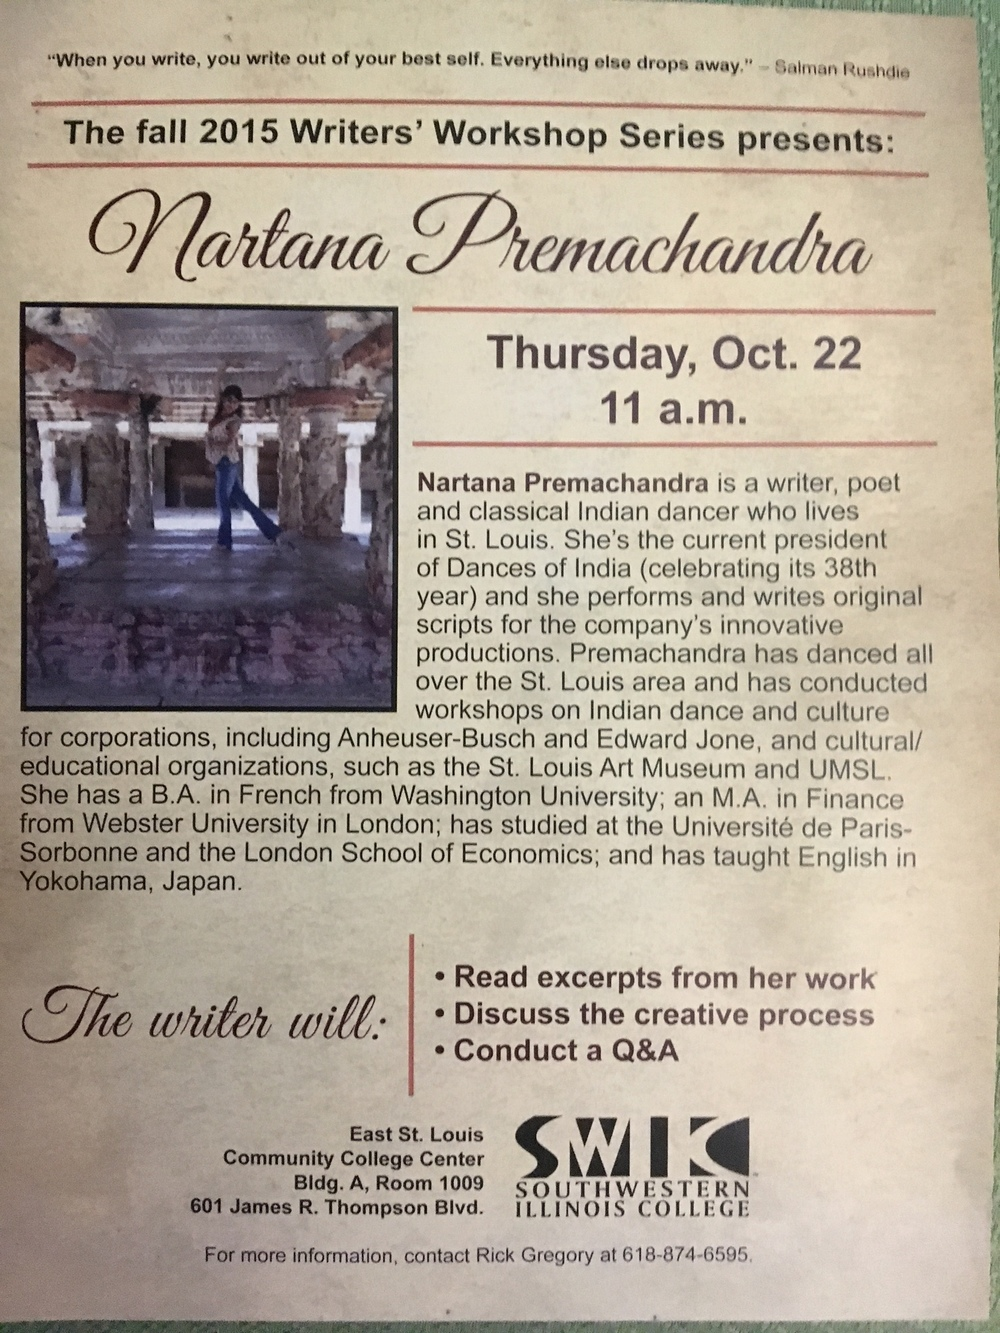 The promo flyer for my reading at Southwestern Illinois College in October 2015